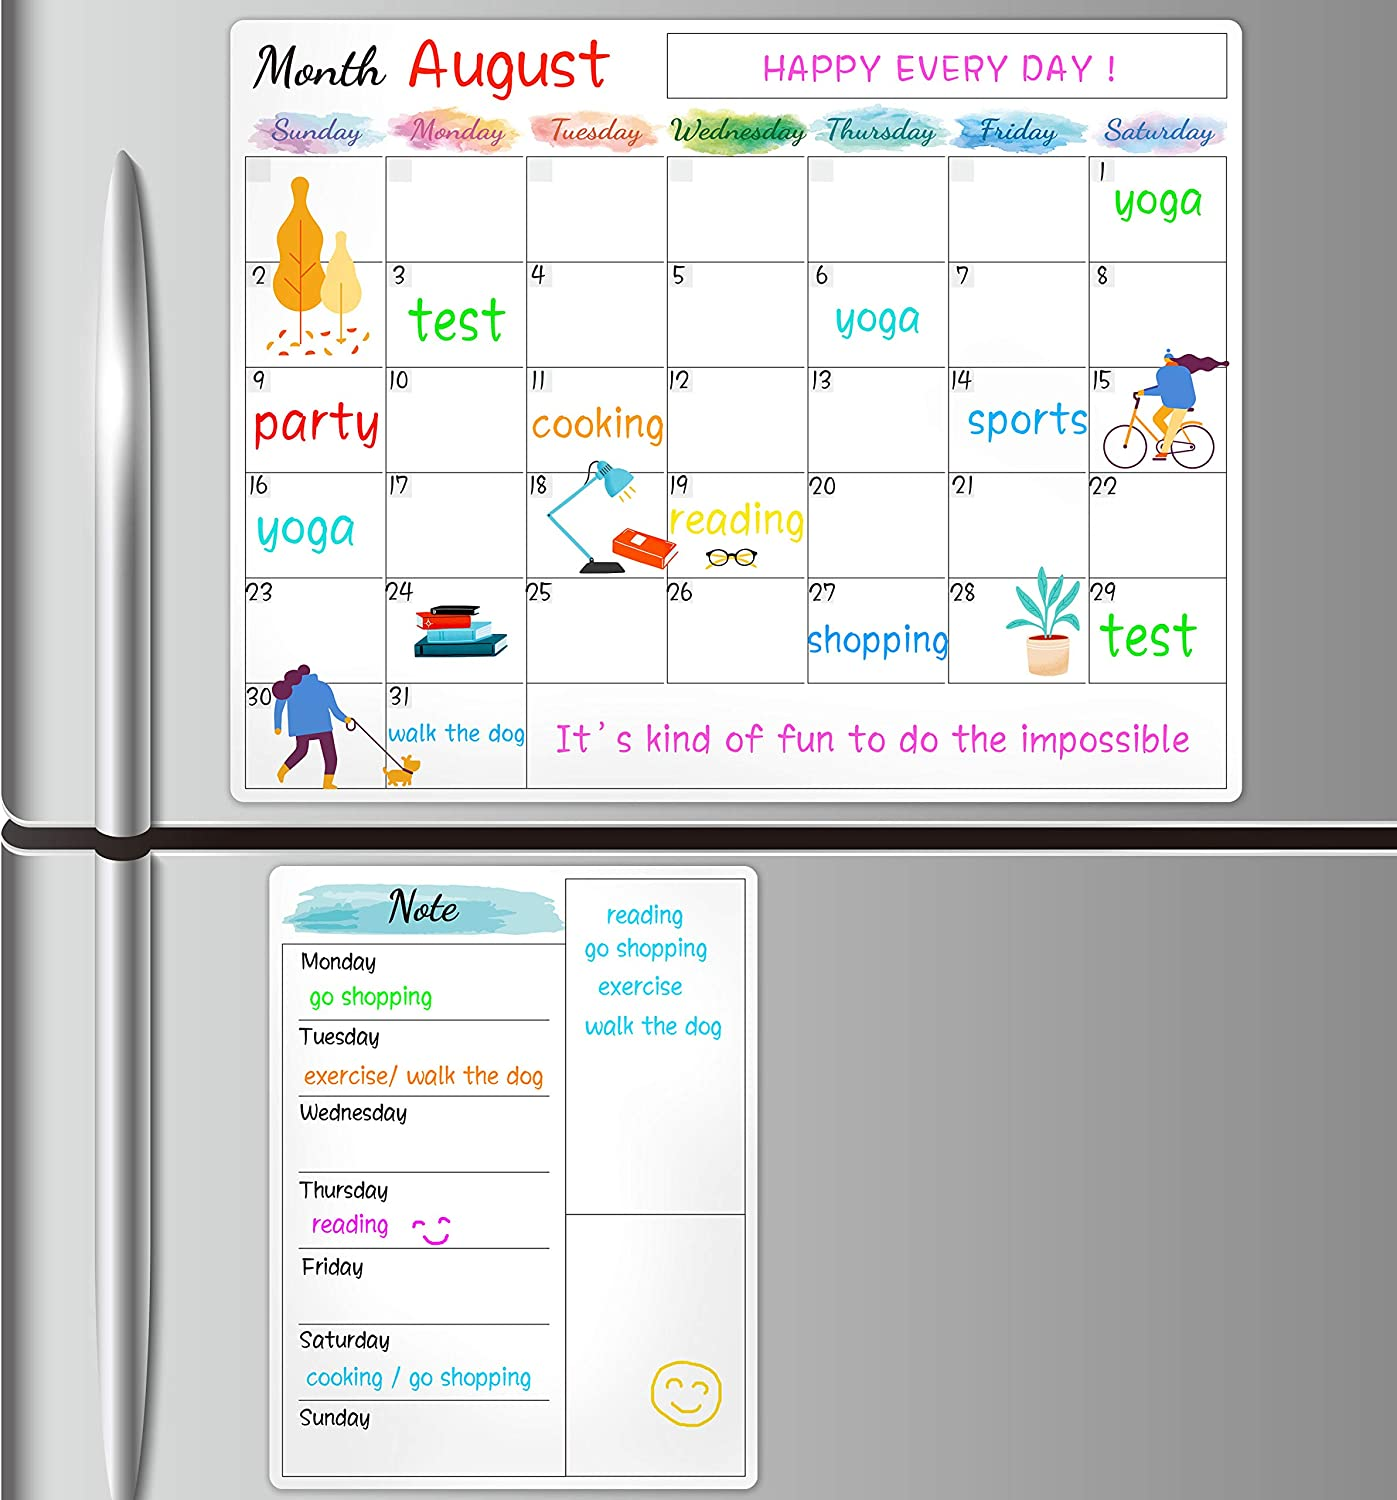 "Dry Erase Fridge Magnetic Calendar - White Board Magnetic Calendar for Refrigerator Wall Home Kitchen Decor, 15""x 11.5"", Bonus Grocery List Magnet Pad for Fridge"